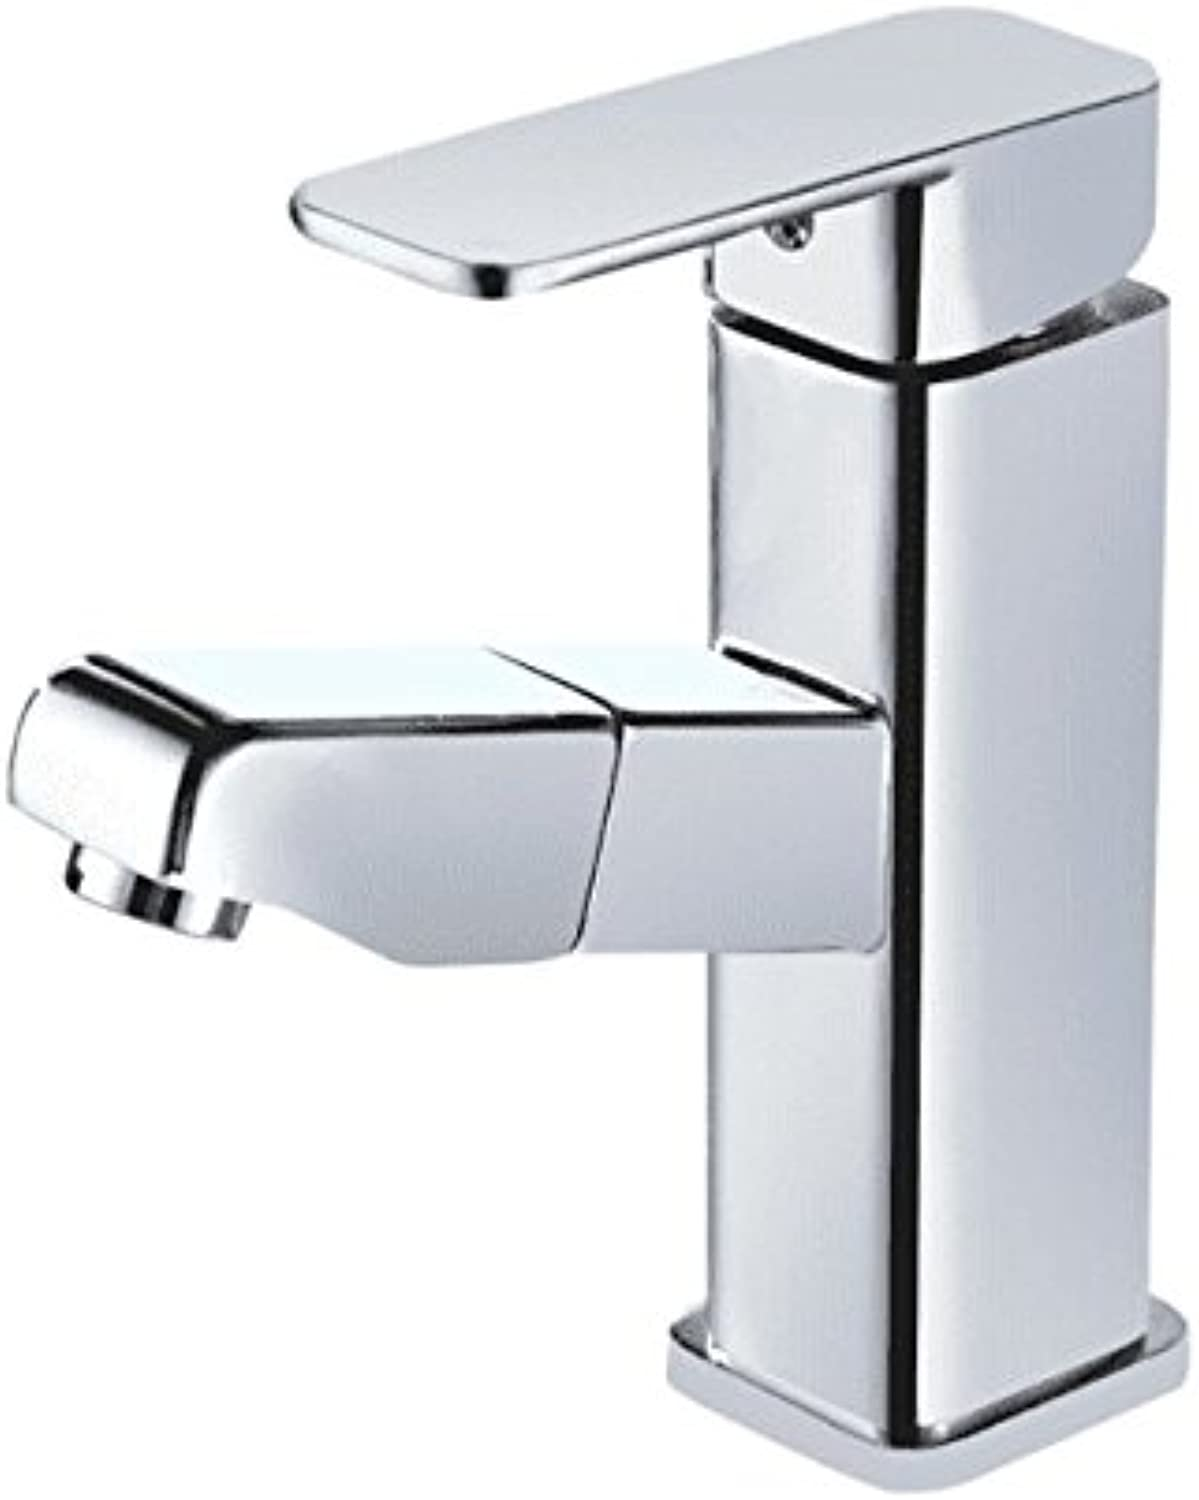 Jduskfl Kitchen Faucet Net Faucet Bathroom Faucet New Glass Bathroom Faucet Waterfall Mixer One Hole Handle Basin Sink Tap Chrome,Red